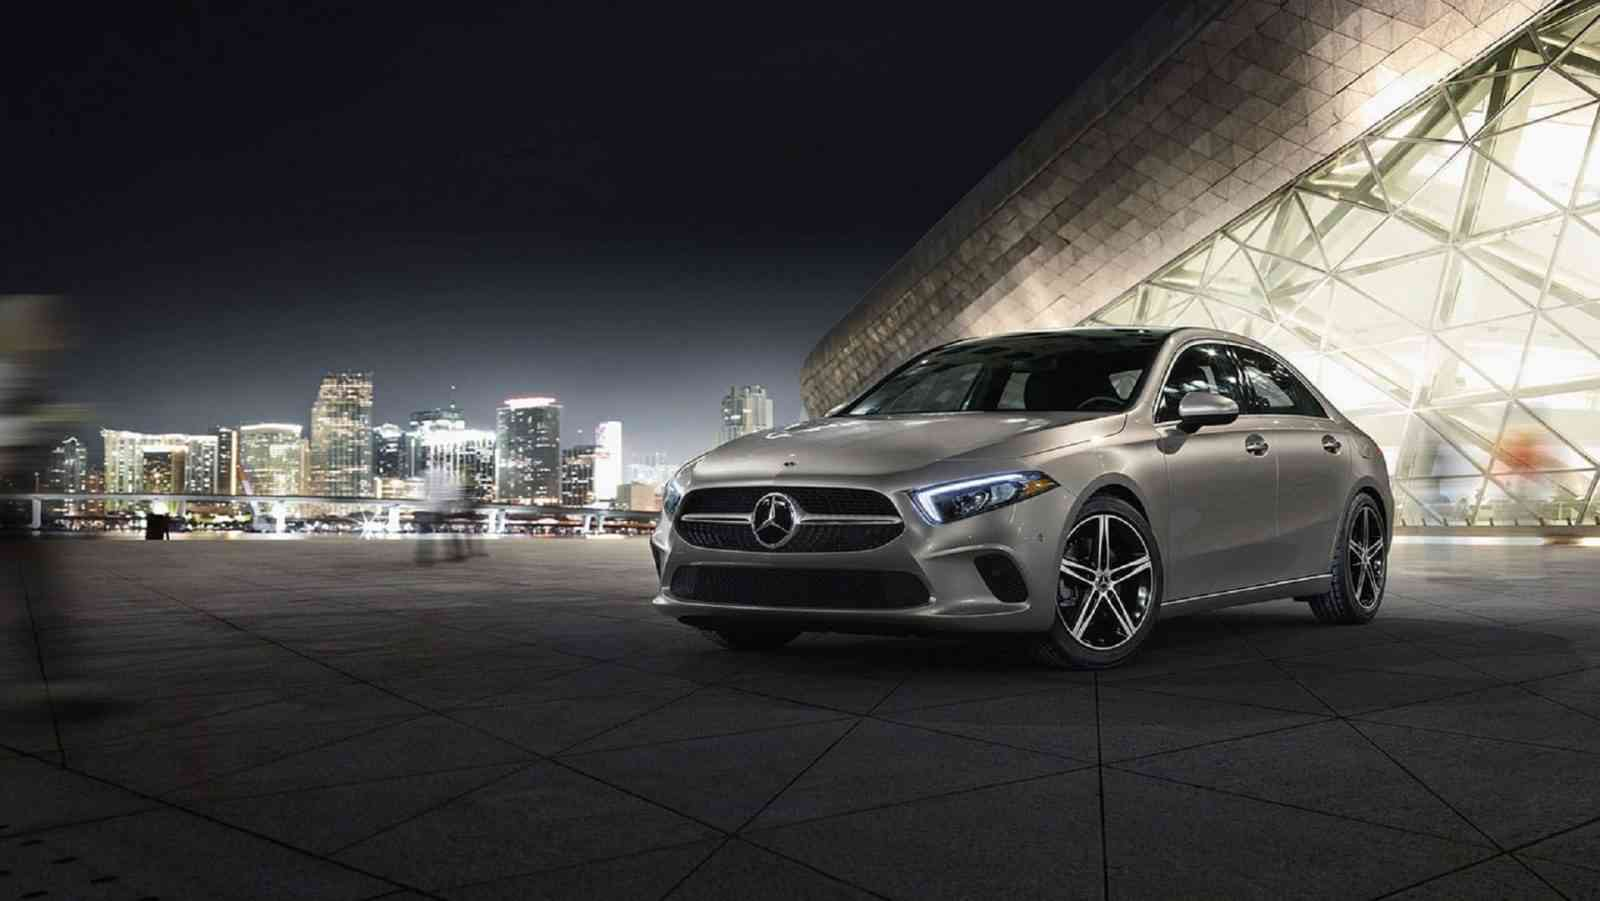 Mercedes Benz classes- pay attention to the list